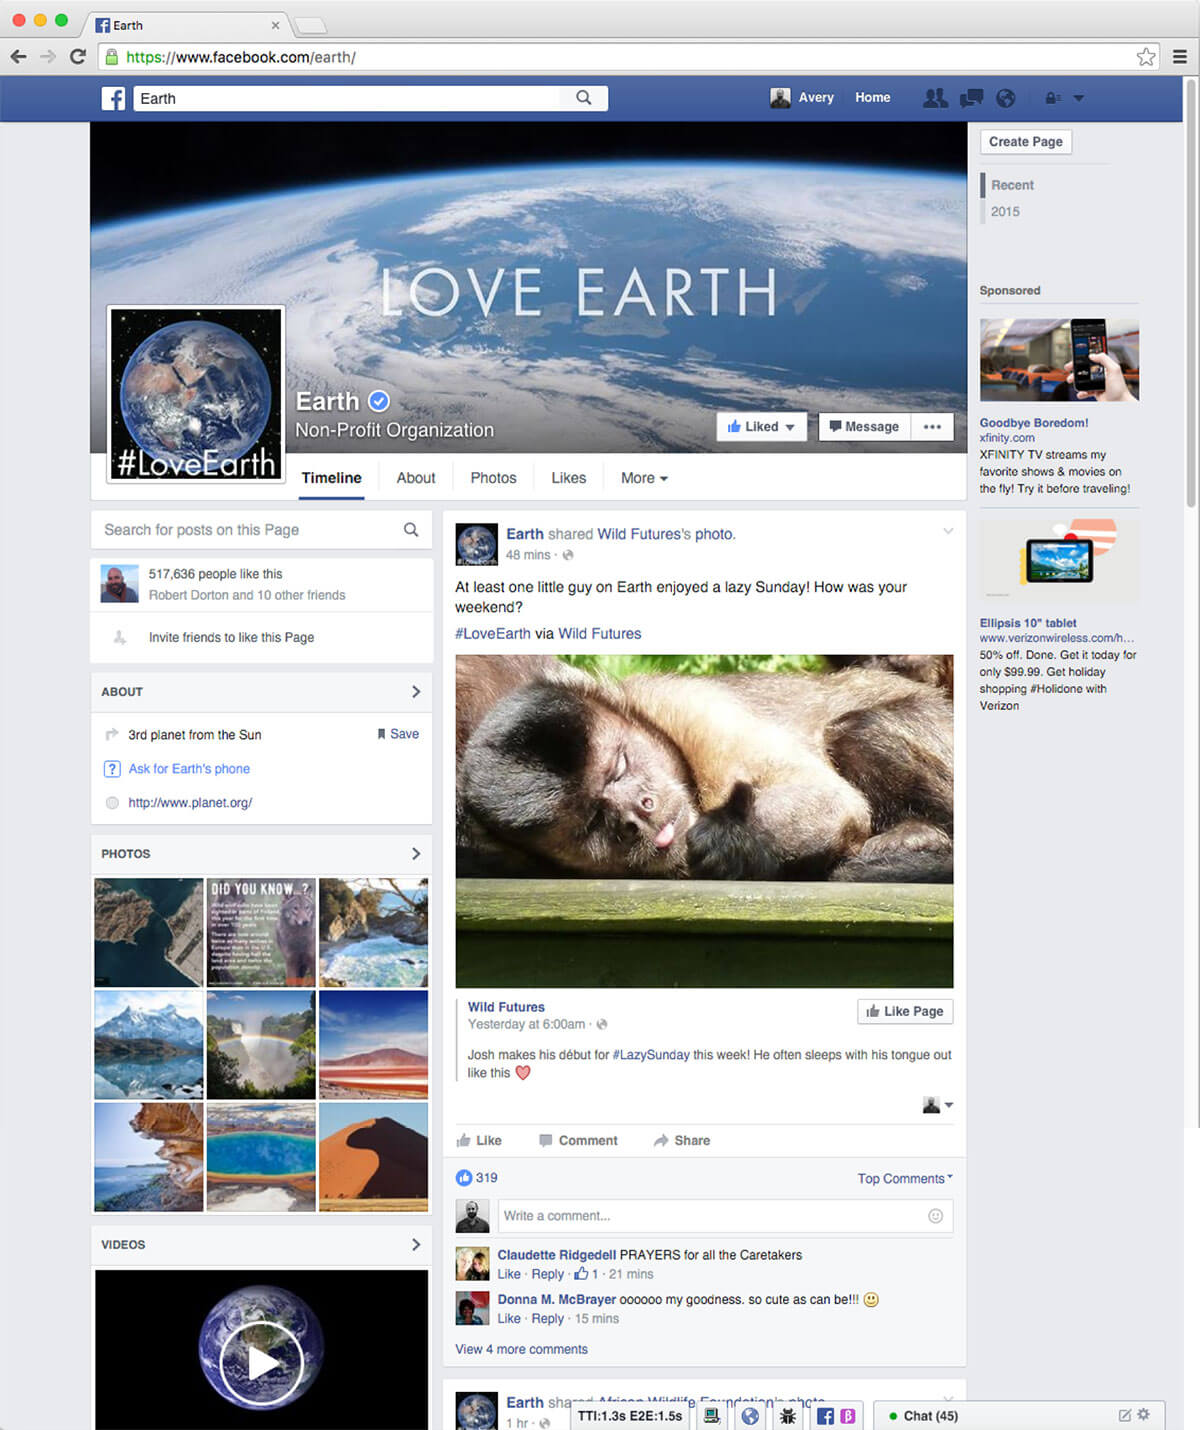 LoveEarth Facebook Page